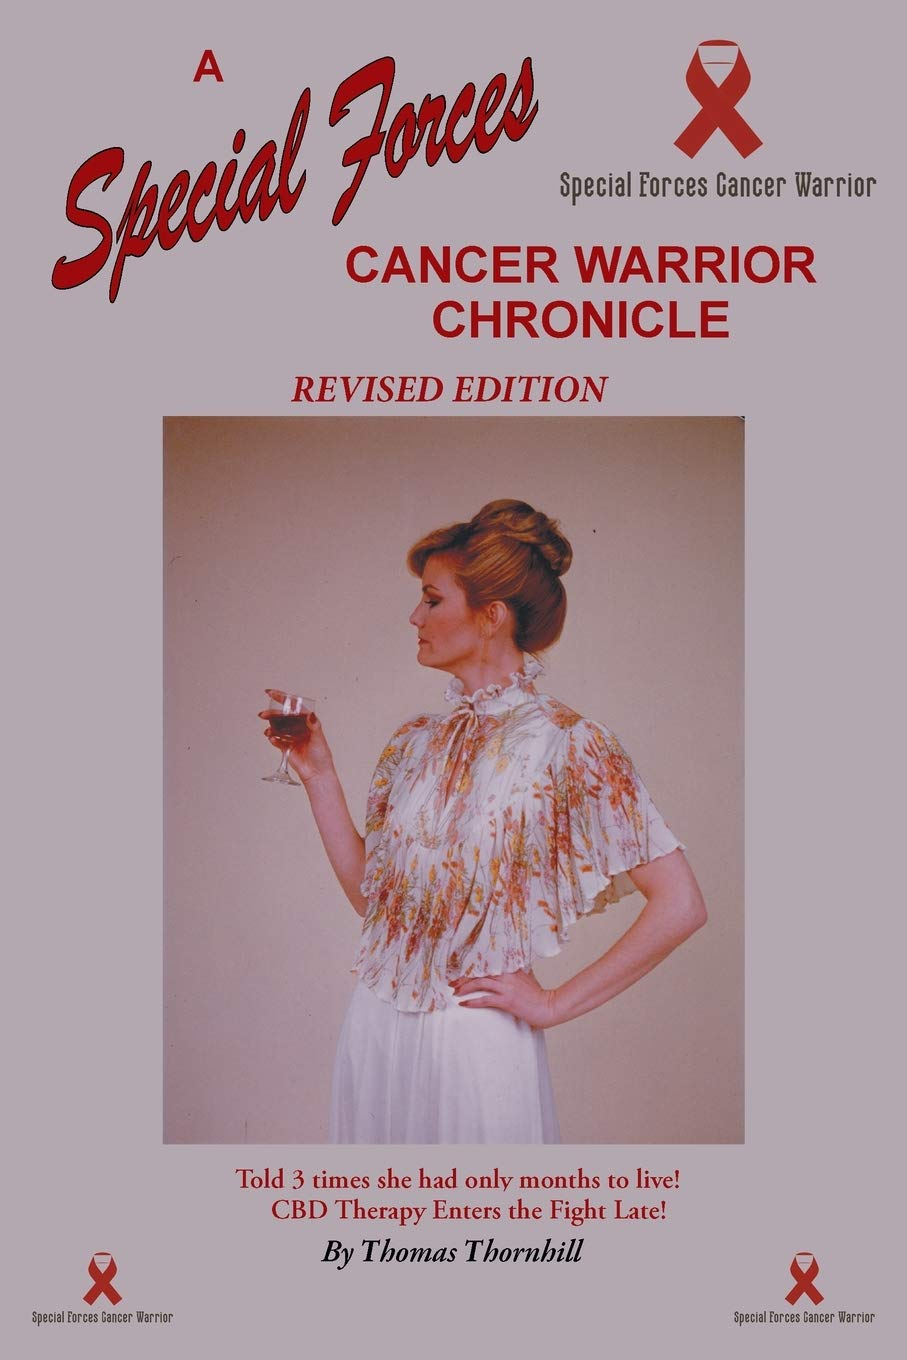 A Special Forces Cancer Warrior Chronicle: CBD vs Stage 4 Cancer